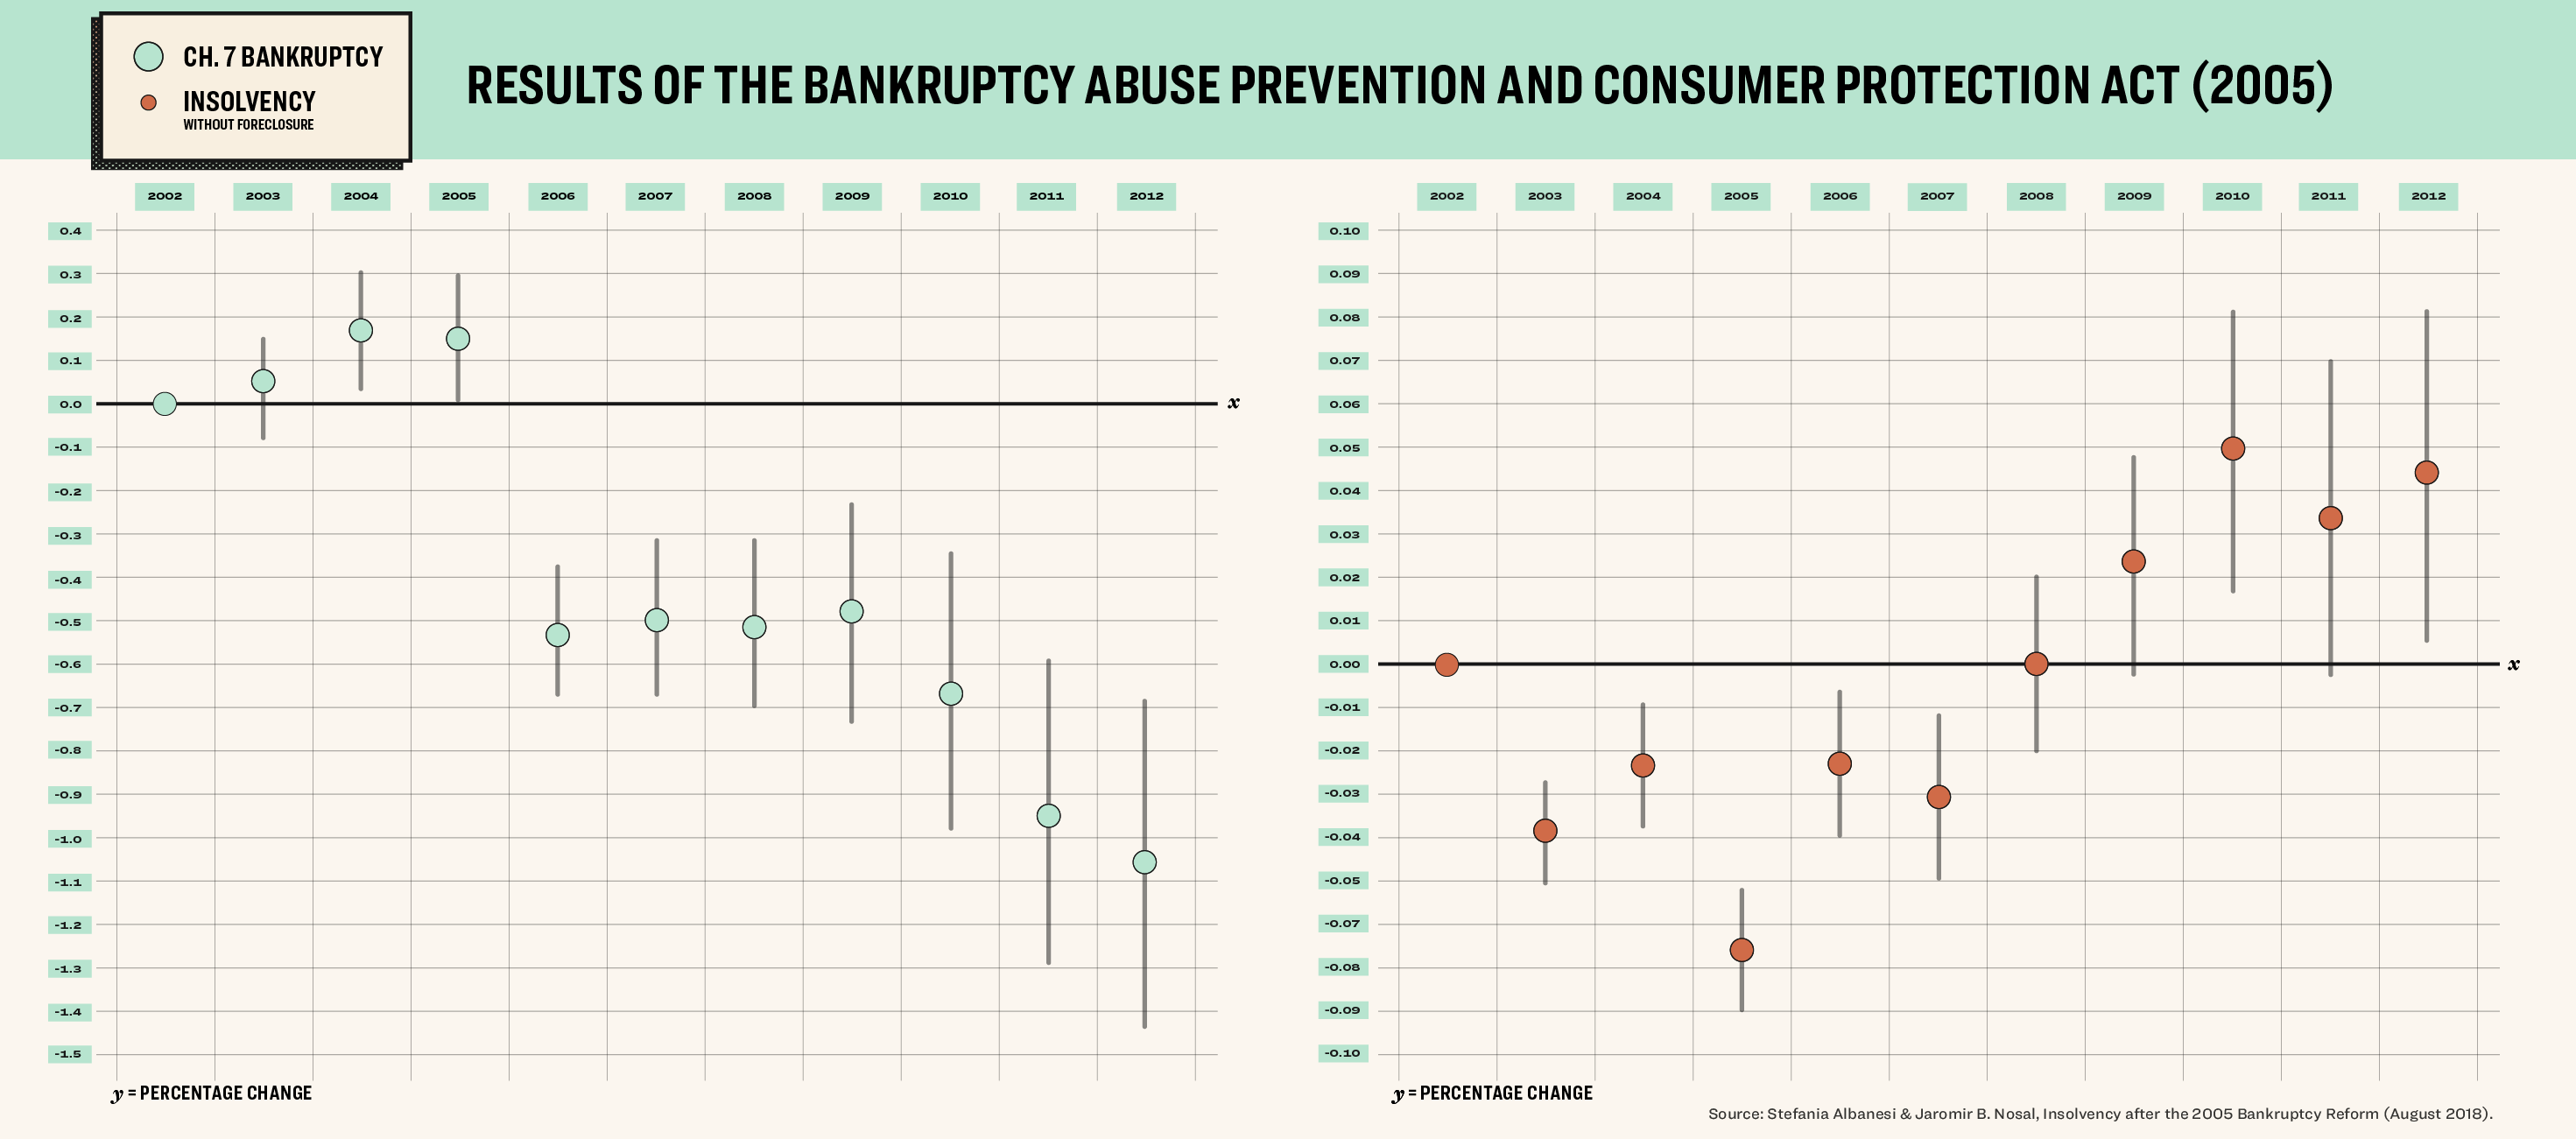 Header: Results of the Bankruptcy Abuse Prevention and Consumer Protection Act (2005) The graph shows bankruptcy filings declining and insolvency increasing Source: https://www.jaromirnosal.net/uploads/6/0/7/5/60756213/draft_august2018.pdf